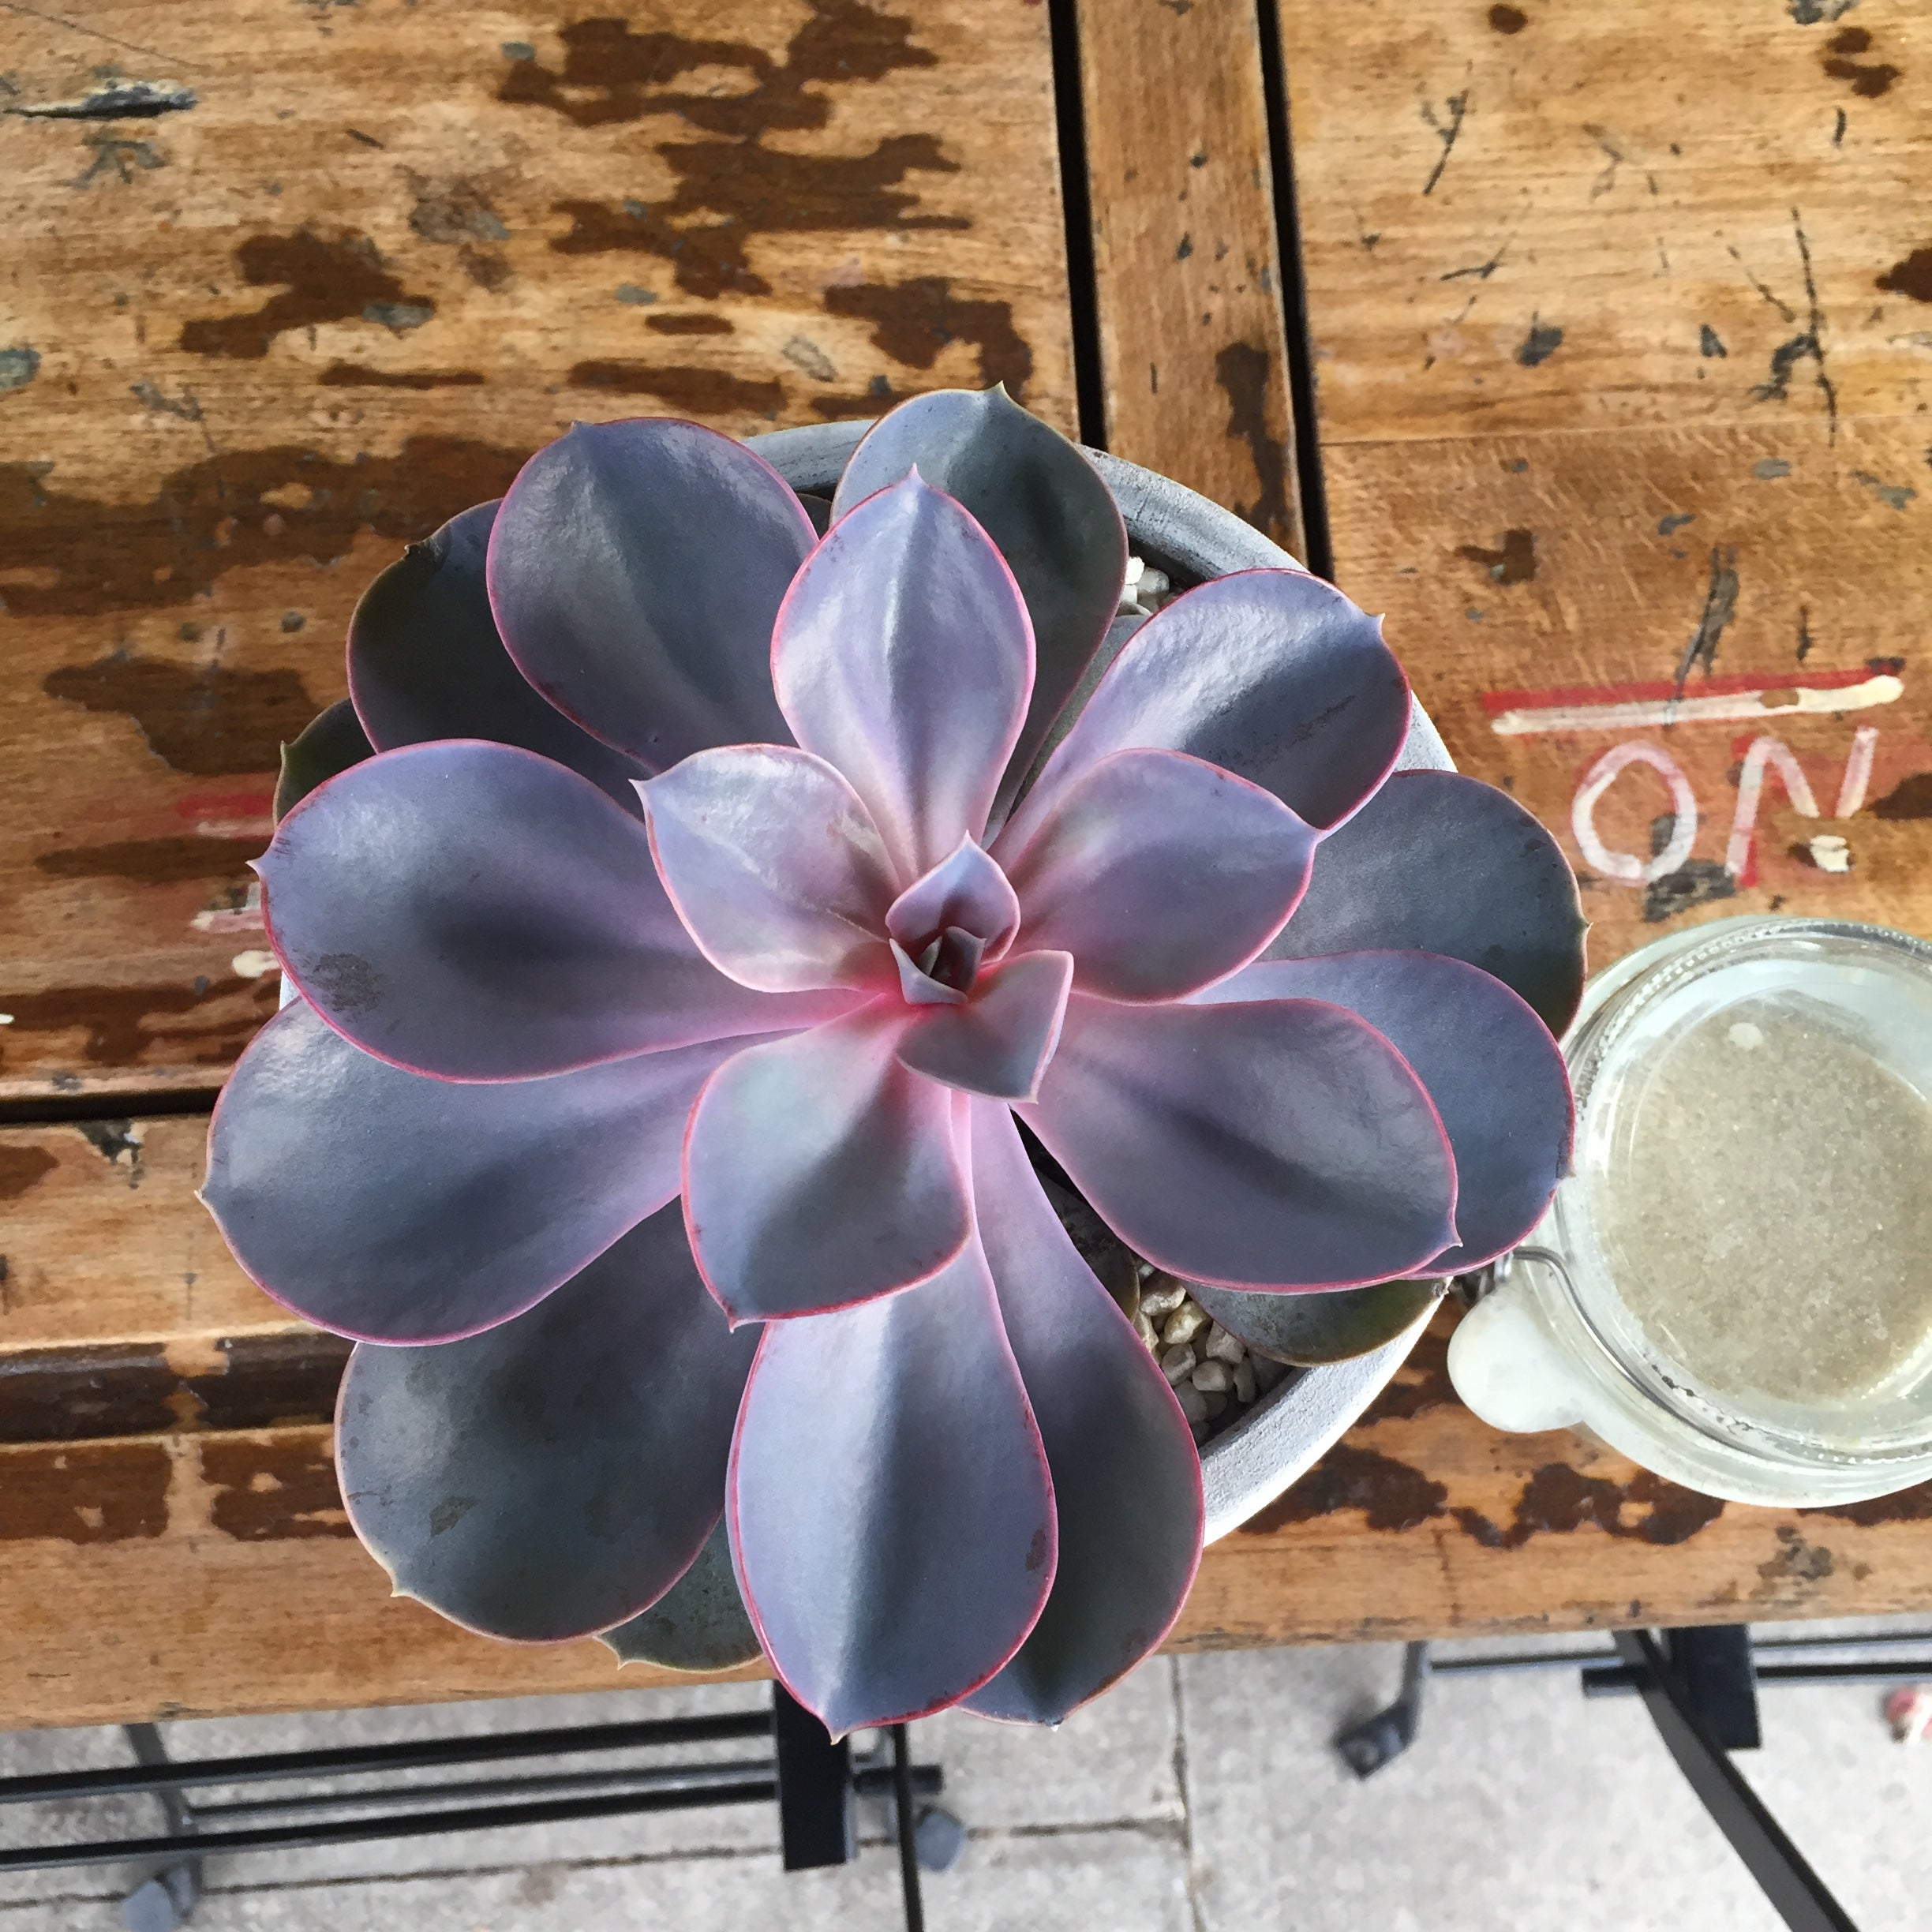 Echeveria Pearle von Neurenburg at The Coffee Traveller in Chiswick